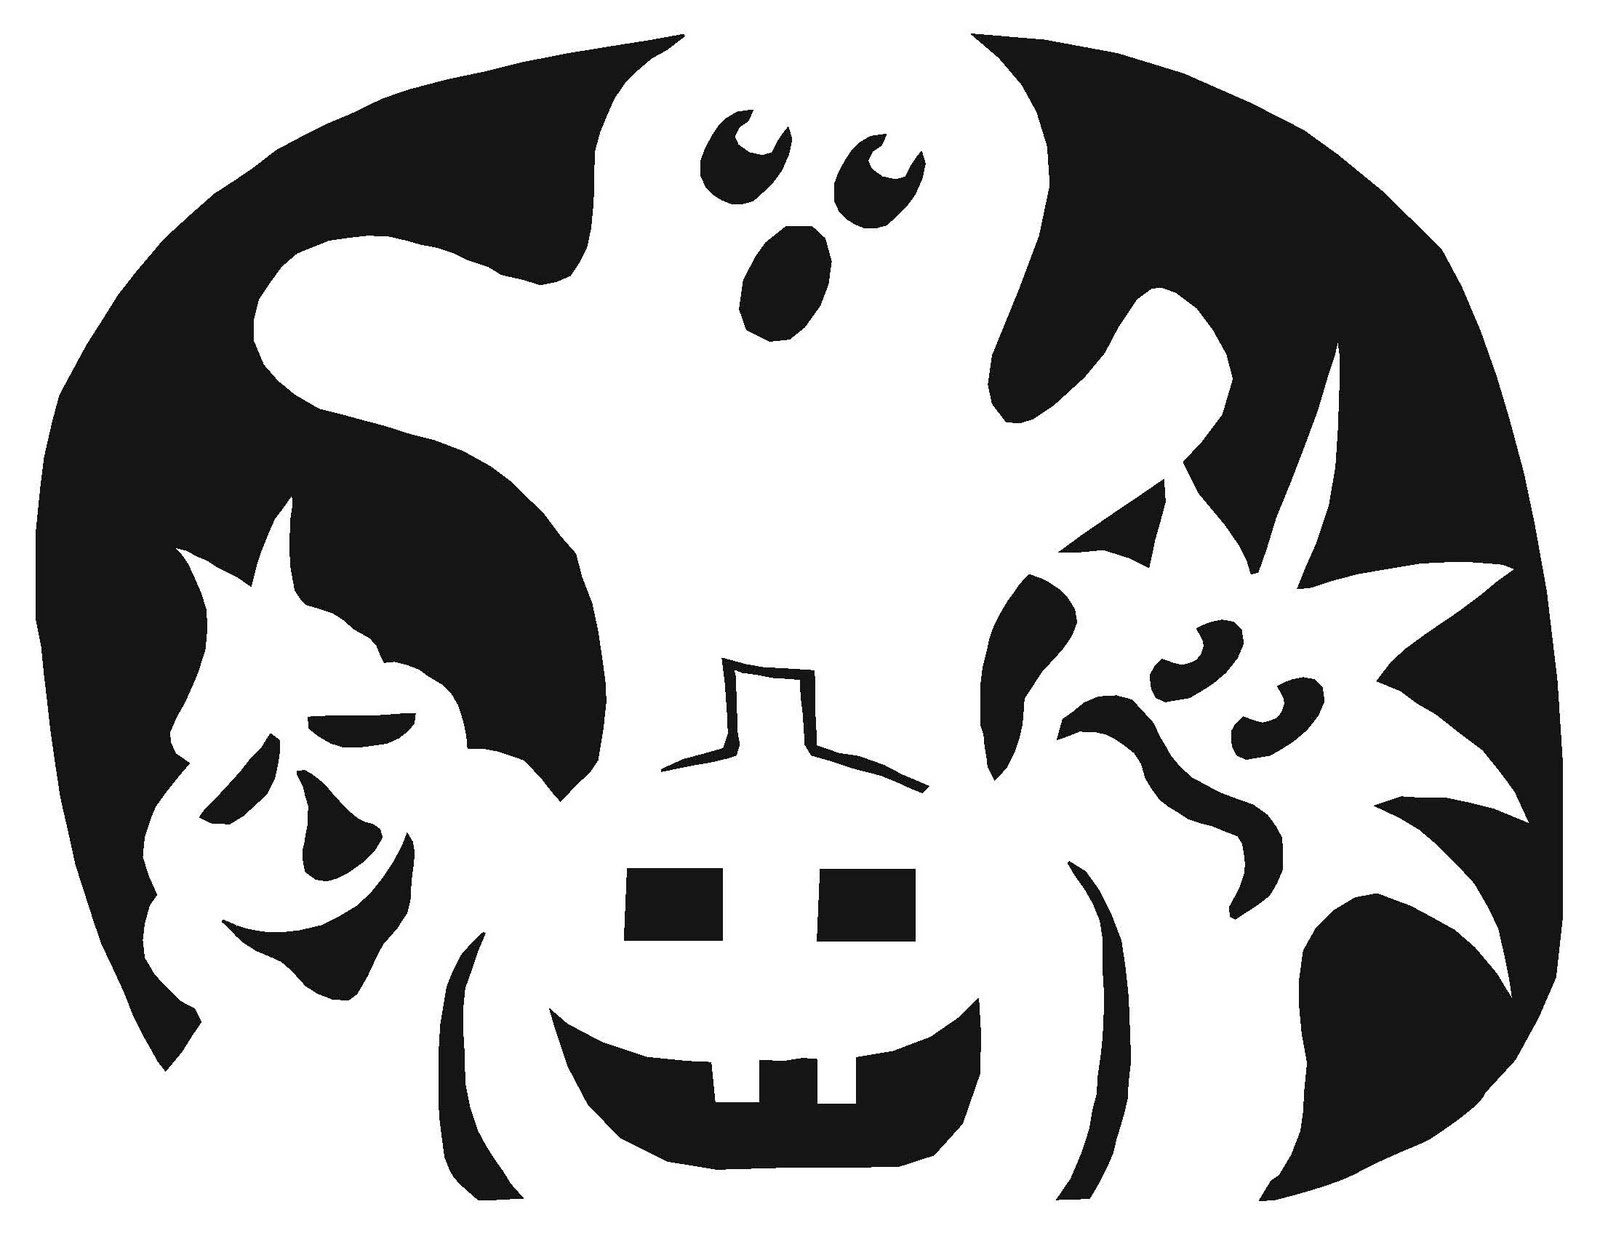 Free Guitar Pumpkin Stencil, Download Free Clip Art, Free Clip Art - Free Pumpkin Printable Carving Patterns